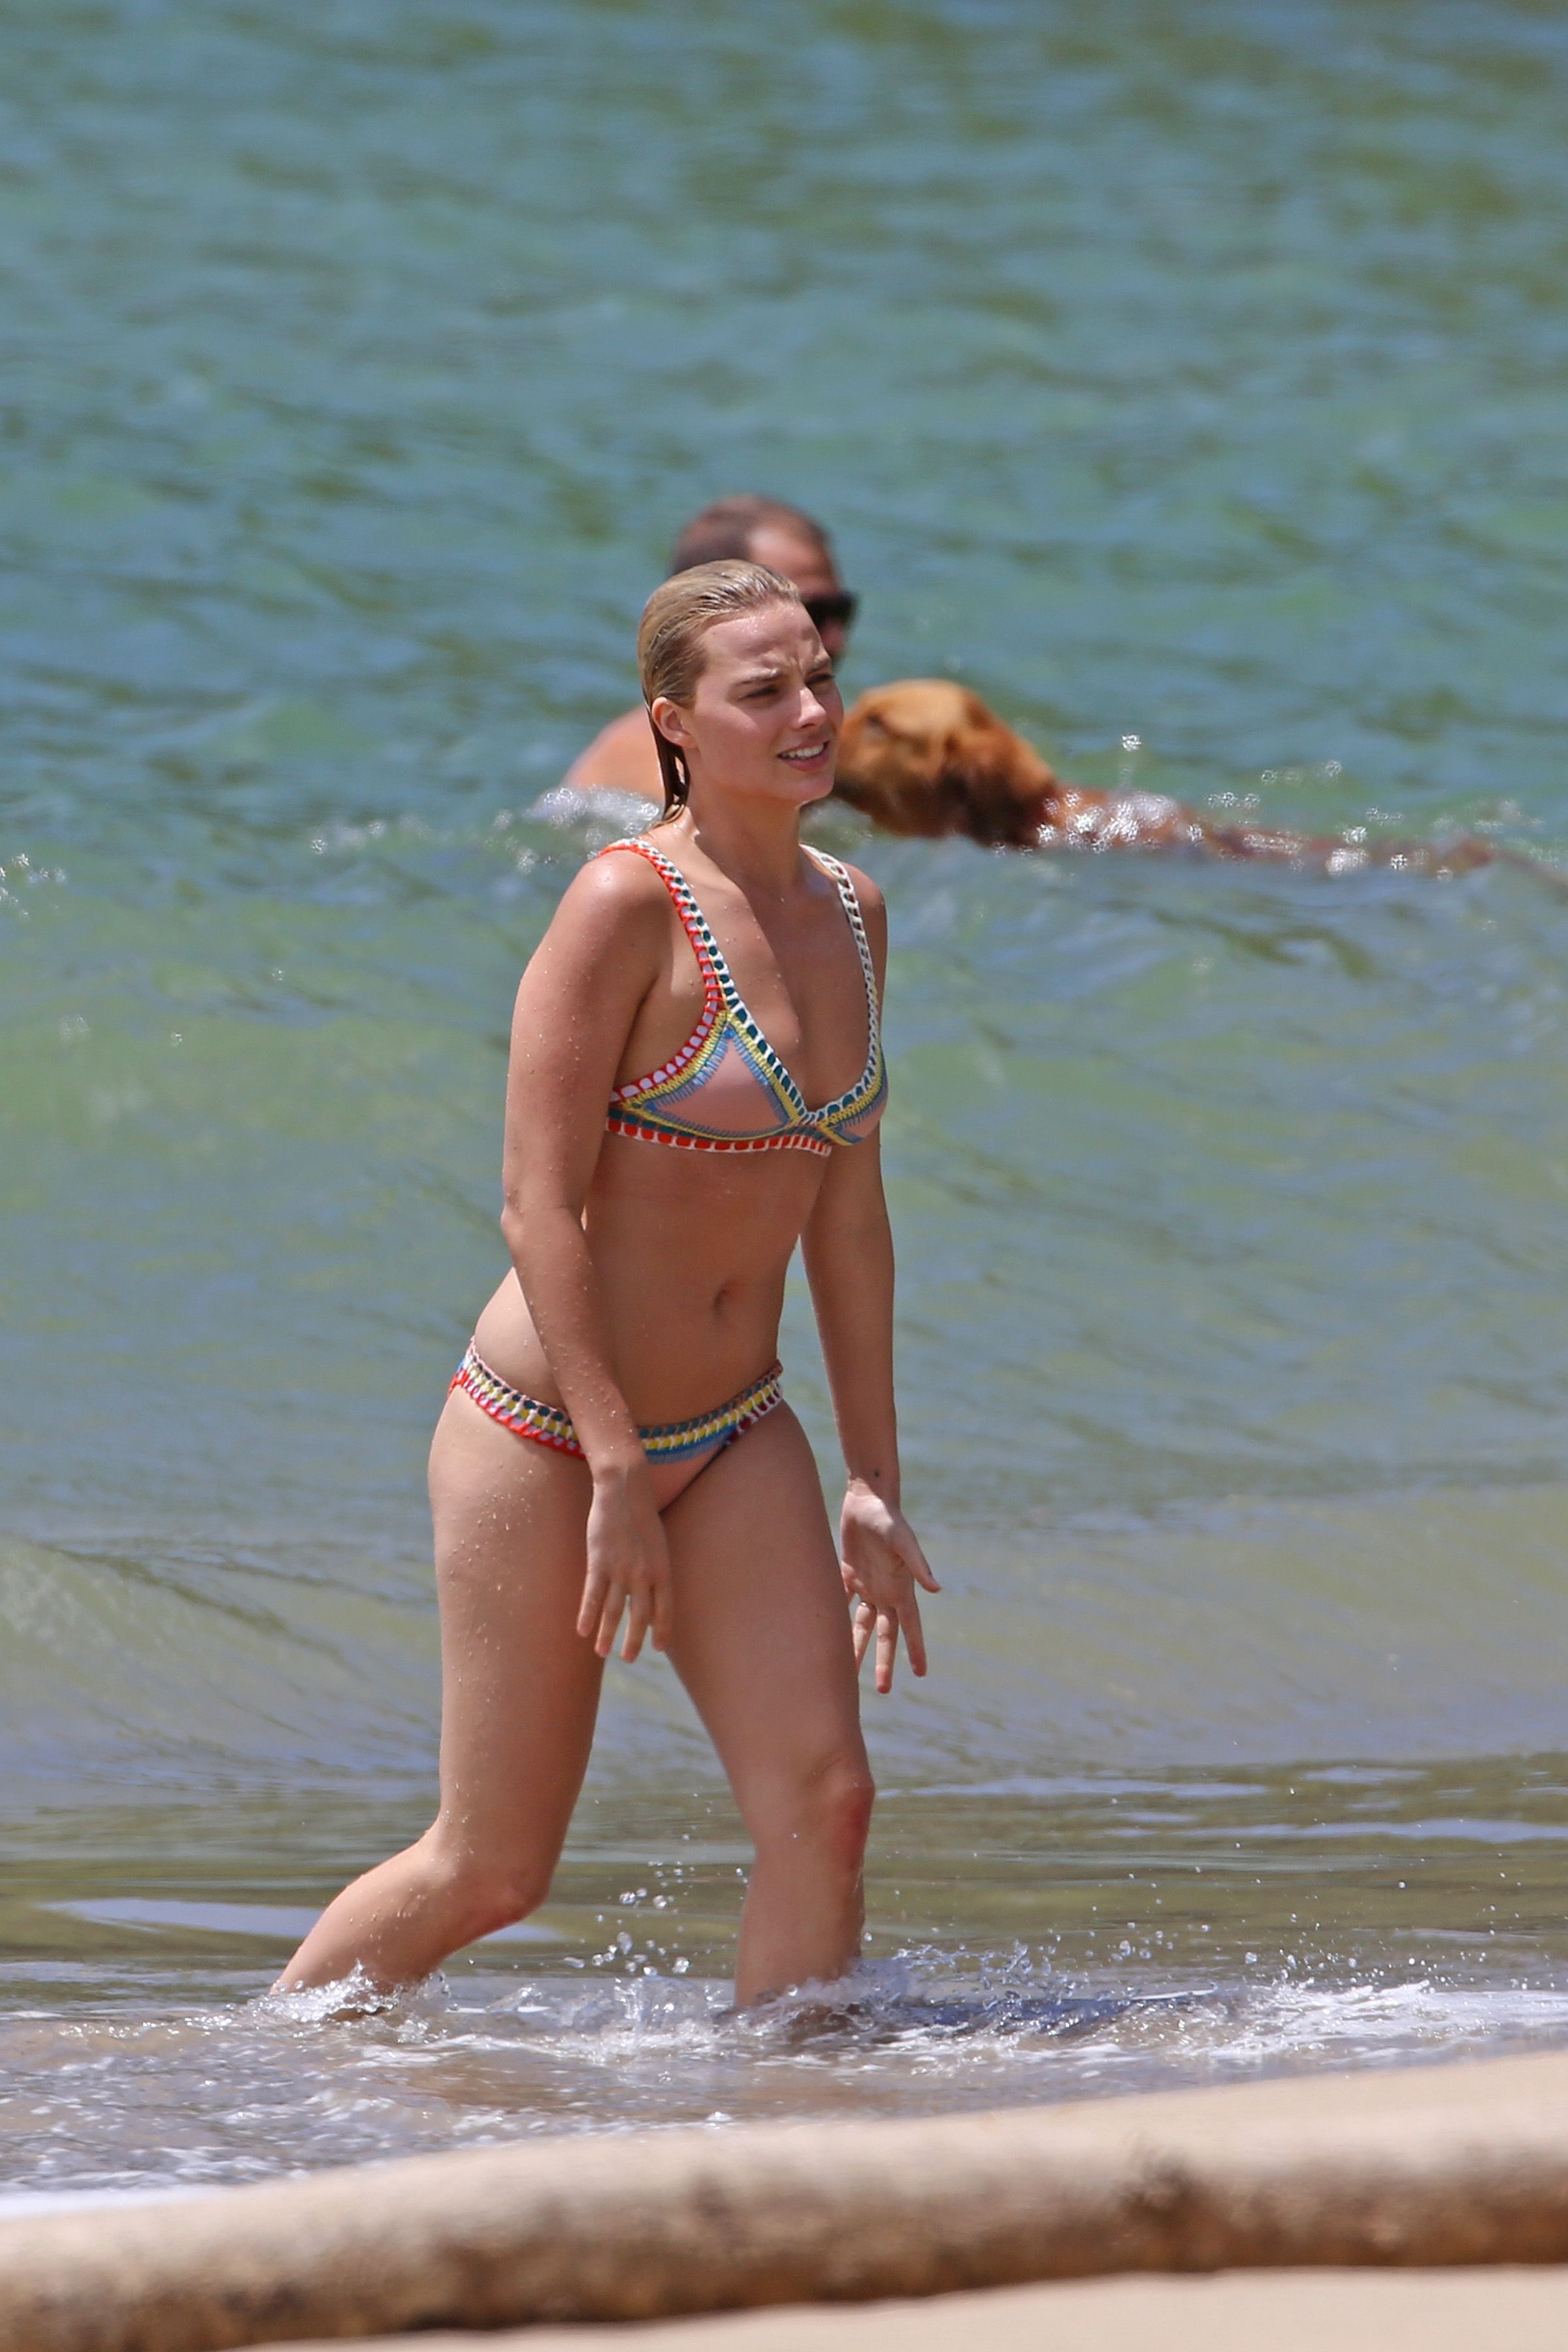 Margot Robbie sexy – The Fappening Leaked Photos 2015-2020